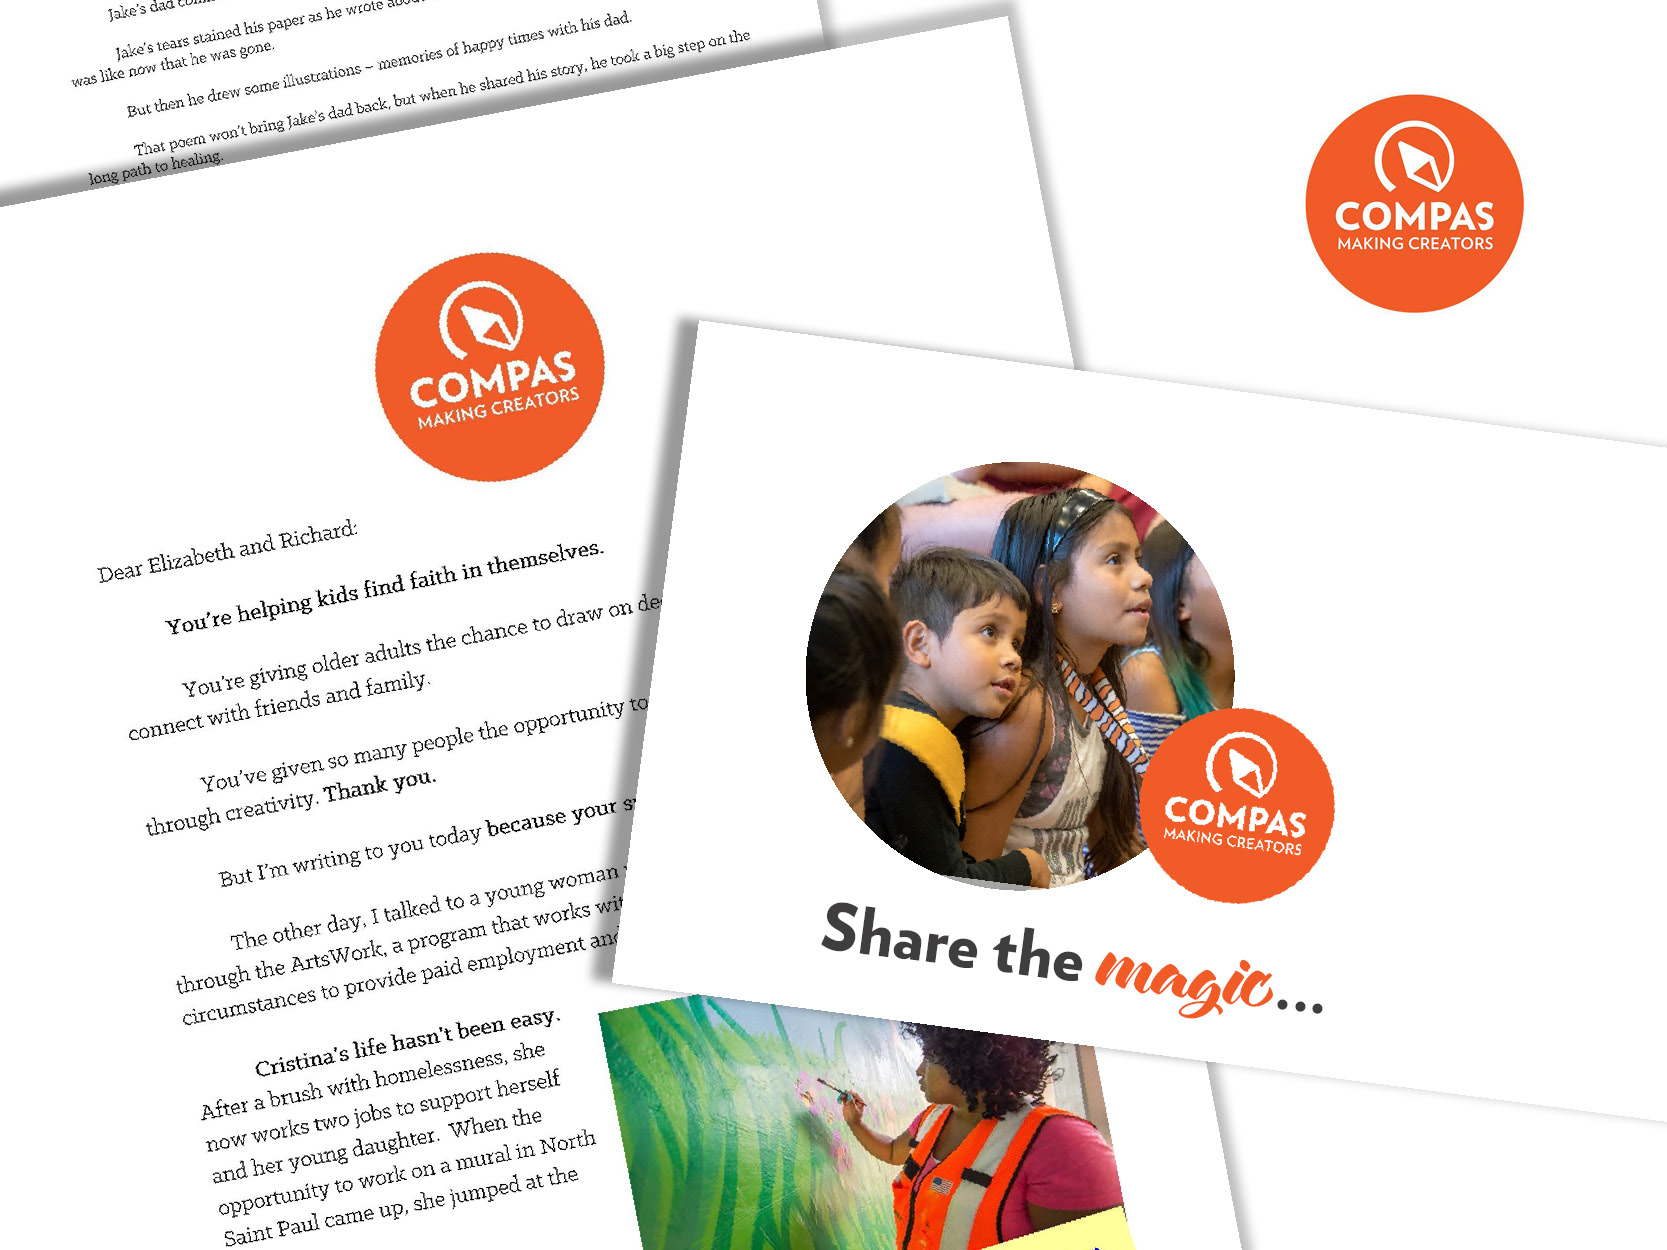 COMPAS Appeals - Strategy, copy, and designAt COMPAS I work to create eye-catching appeals that will engage and motivate donors from the moment they see the envelope in their mailbox. I've created dozens of appeals, increasing giving to annual appeals by more than 40% during my tenure.